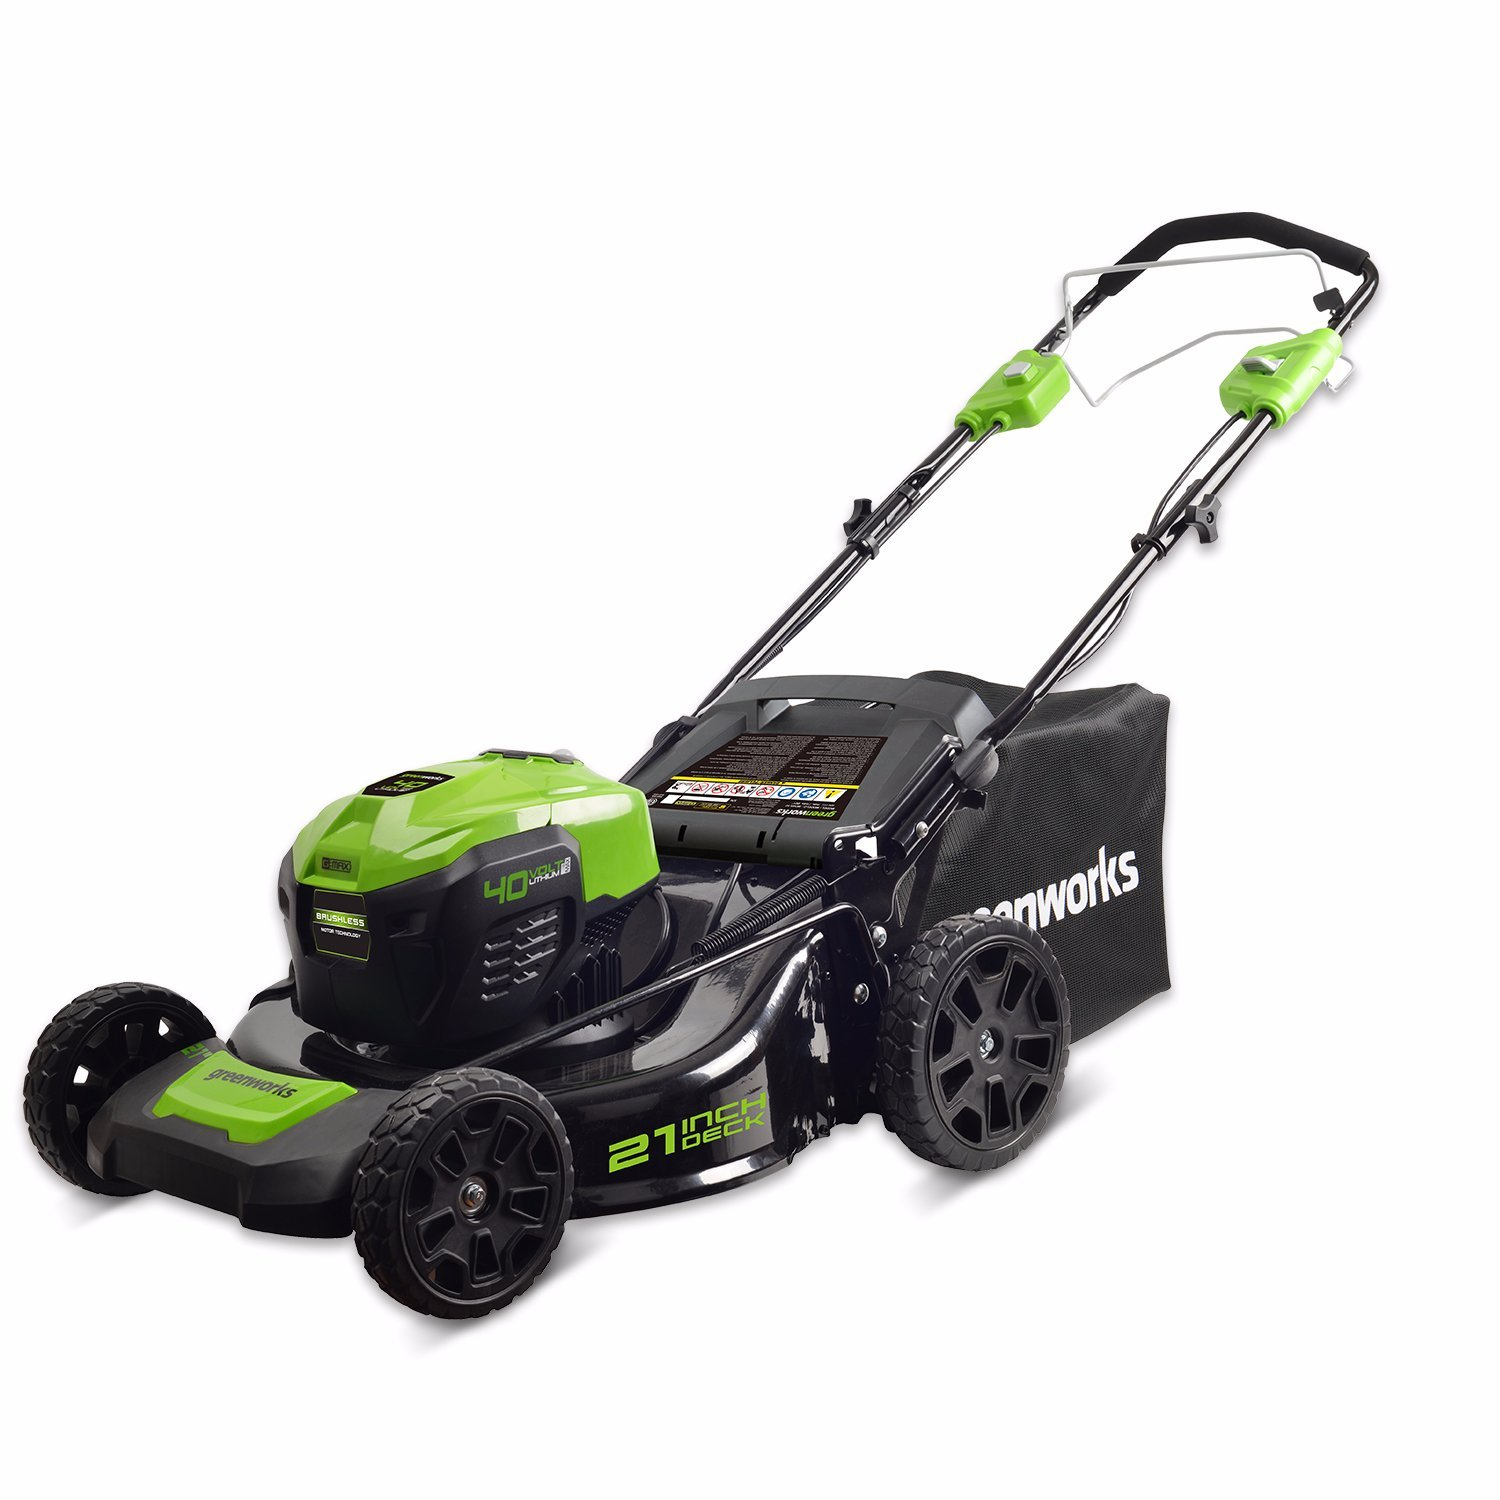 Best Self Propelled Lawn Mower 2020.Ego Lawn Mower Review An Excellent Battery Powered